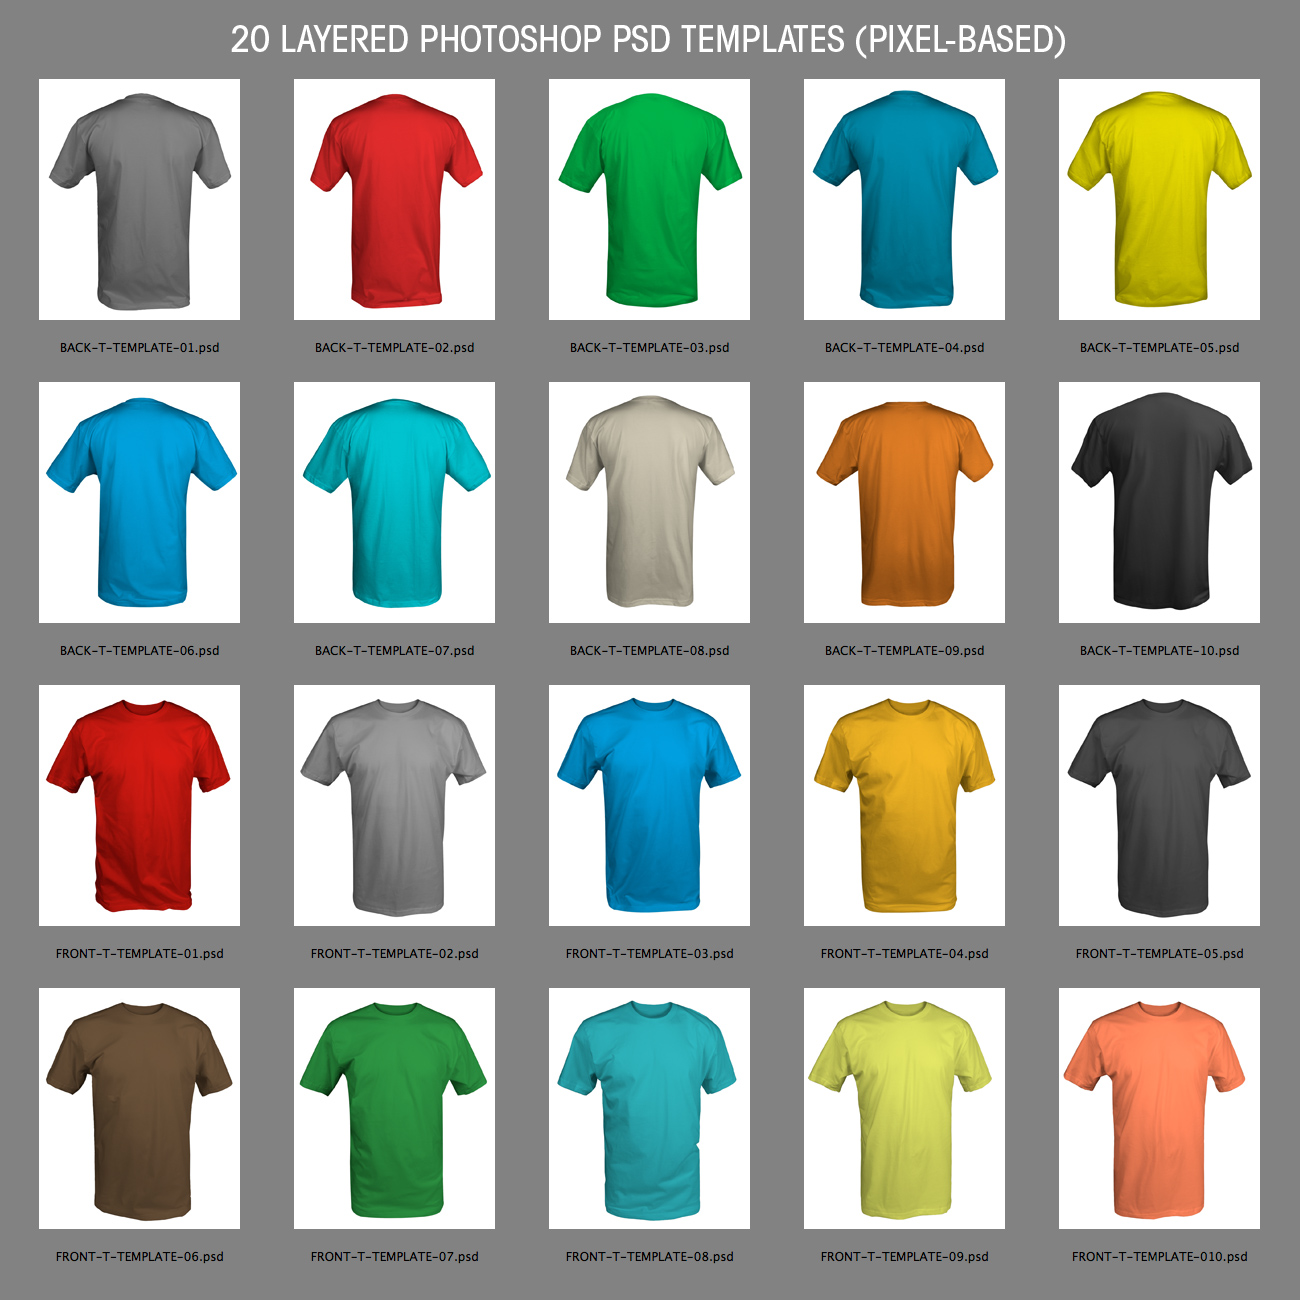 19 free templates for photoshop psd shirt images white t for T shirt layout template photoshop